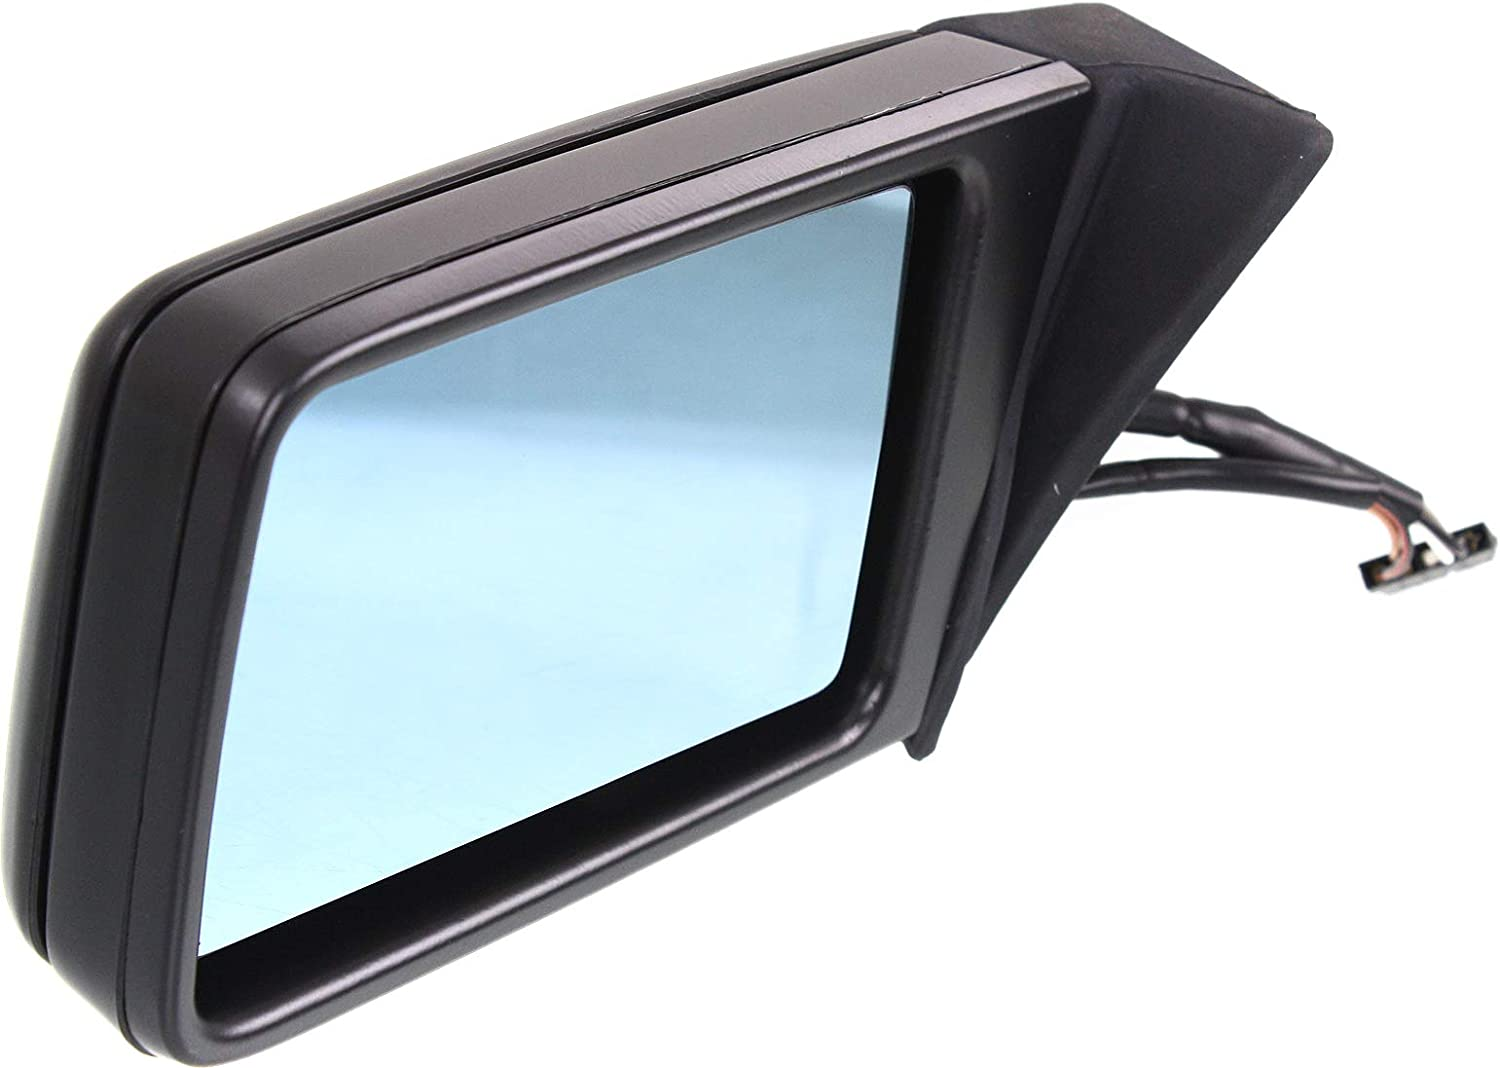 NEW MB1320103 POWER MIRROR HEATED FITS 1994-1995 MERCEDES-BENZ E320 MB1320103